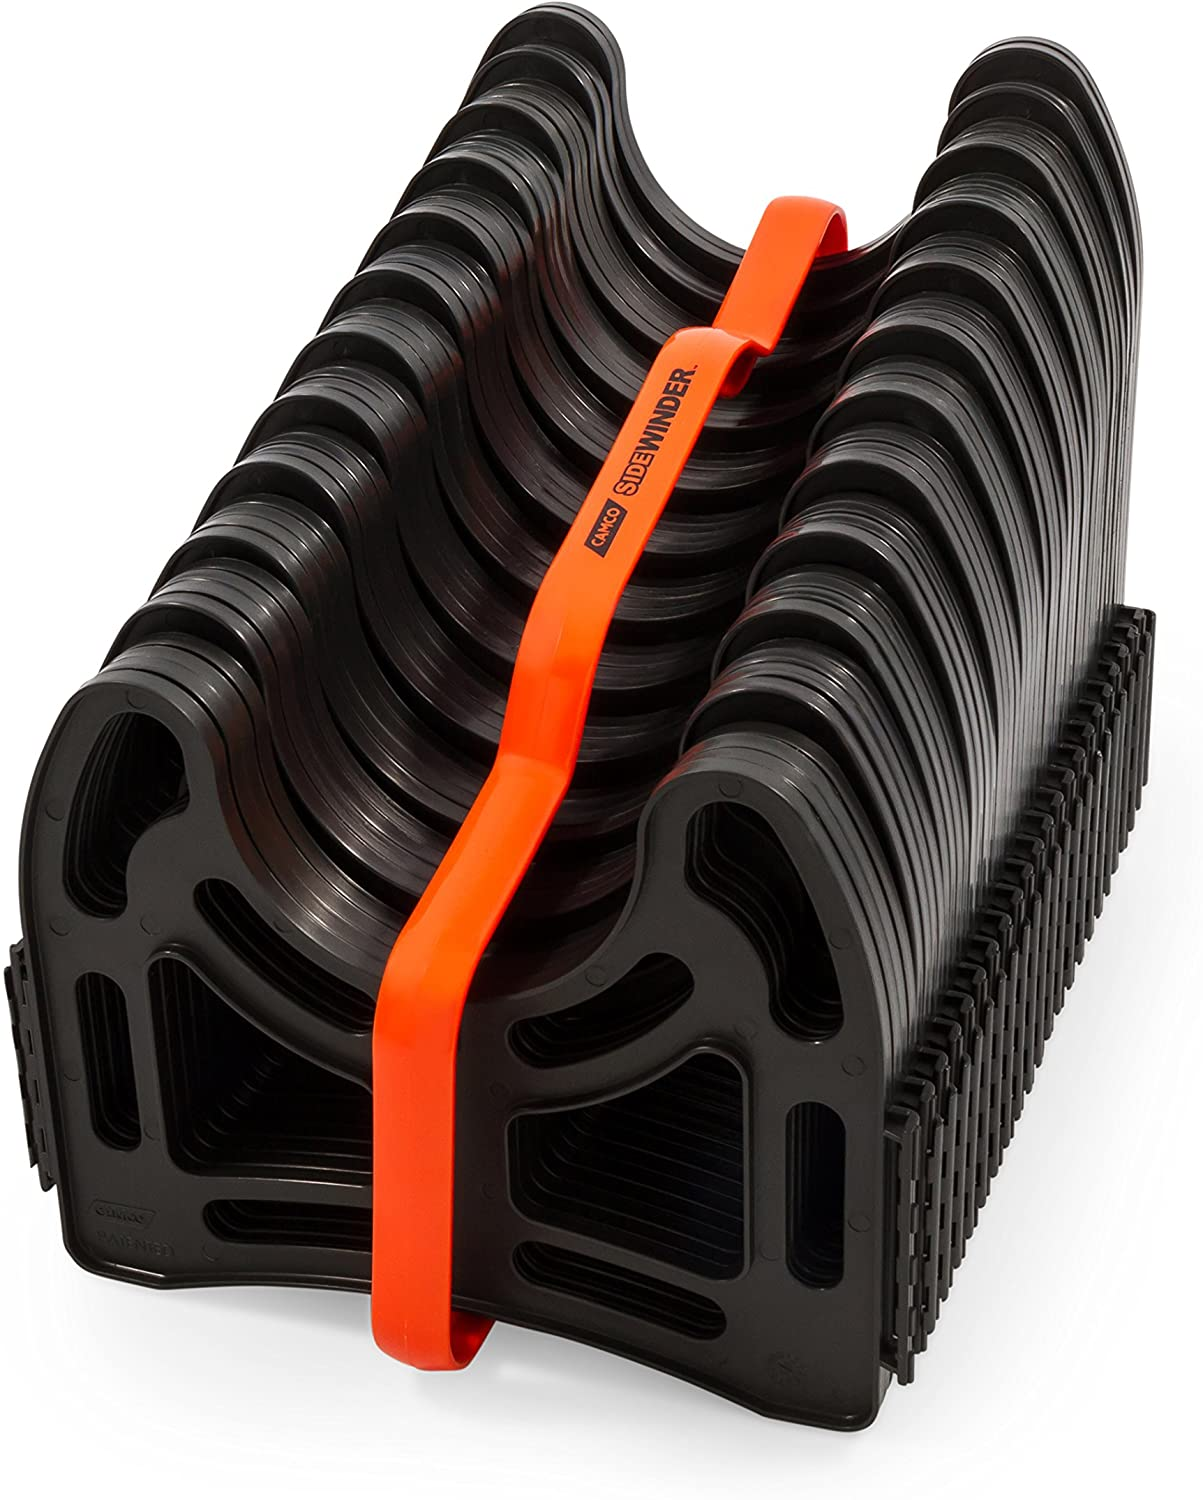 Camco 20ft (43051) Sidewinder RV Sewer Hose Support